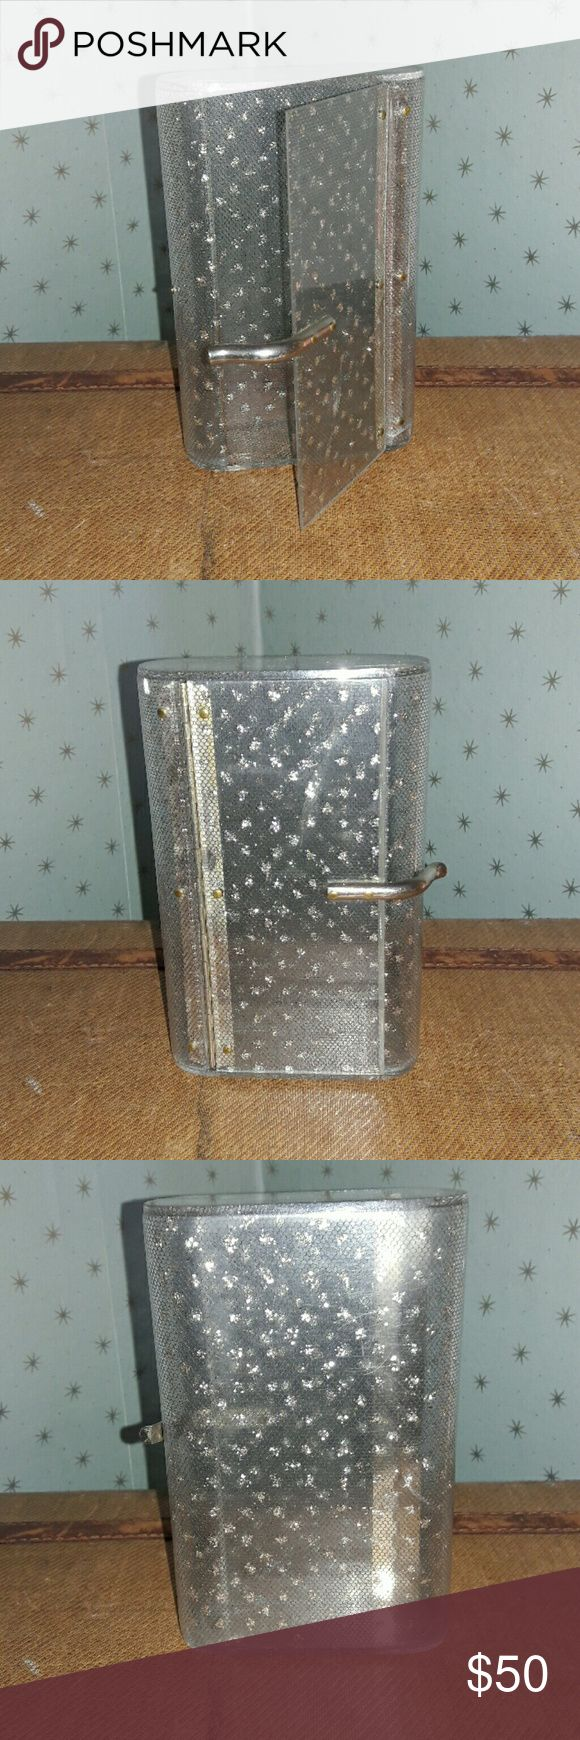 1950's Wilardy stardust glitter lucite clutch! Gorgeous lucite clutch. Measures 7x5x1.5 There are 2 fractures in the Lucite  (see pics). You have to look very closely to see them. Clutch has a black net lining with silver  confetti. Very glamorous, red carpet! These clutches retail for 400-650 in great condition. This one is in ok condition. It has been used and well loved! Bags Clutches & Wristlets